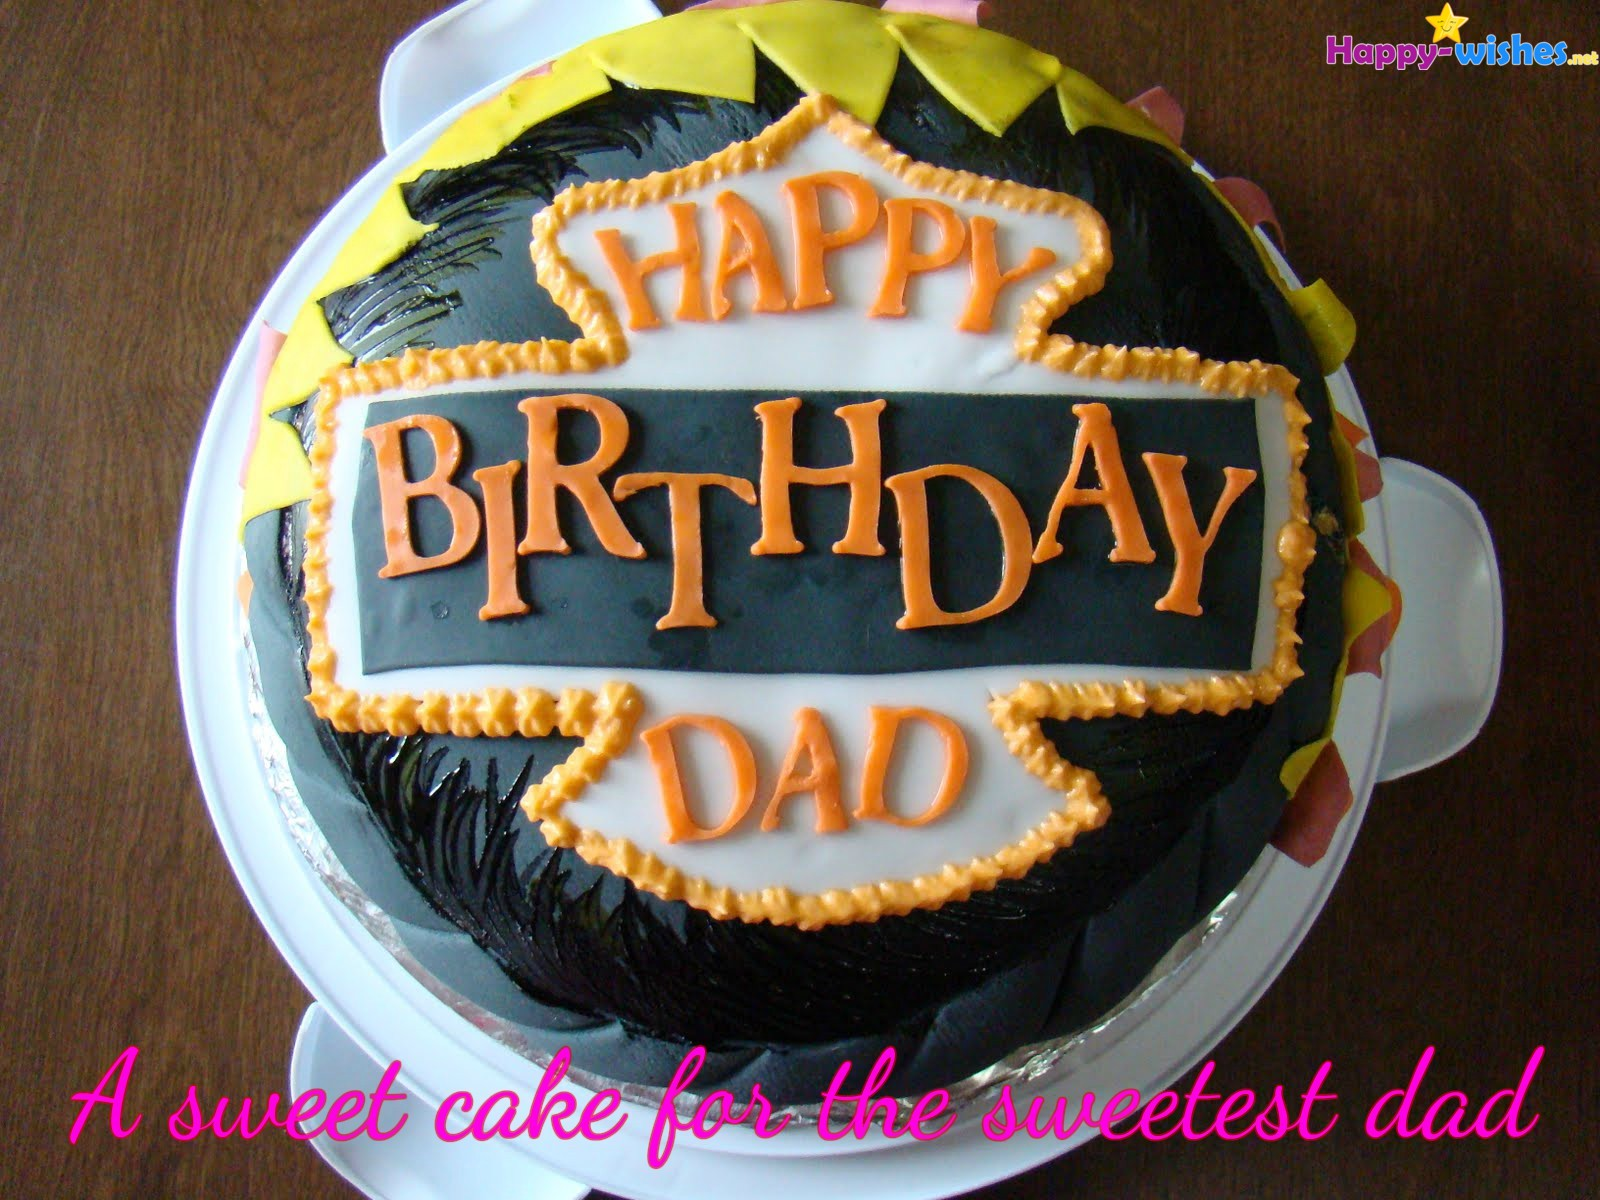 Terrific Happy Birthday Wishes For Dad Quotes Images And Memes Birthday Cards Printable Benkemecafe Filternl